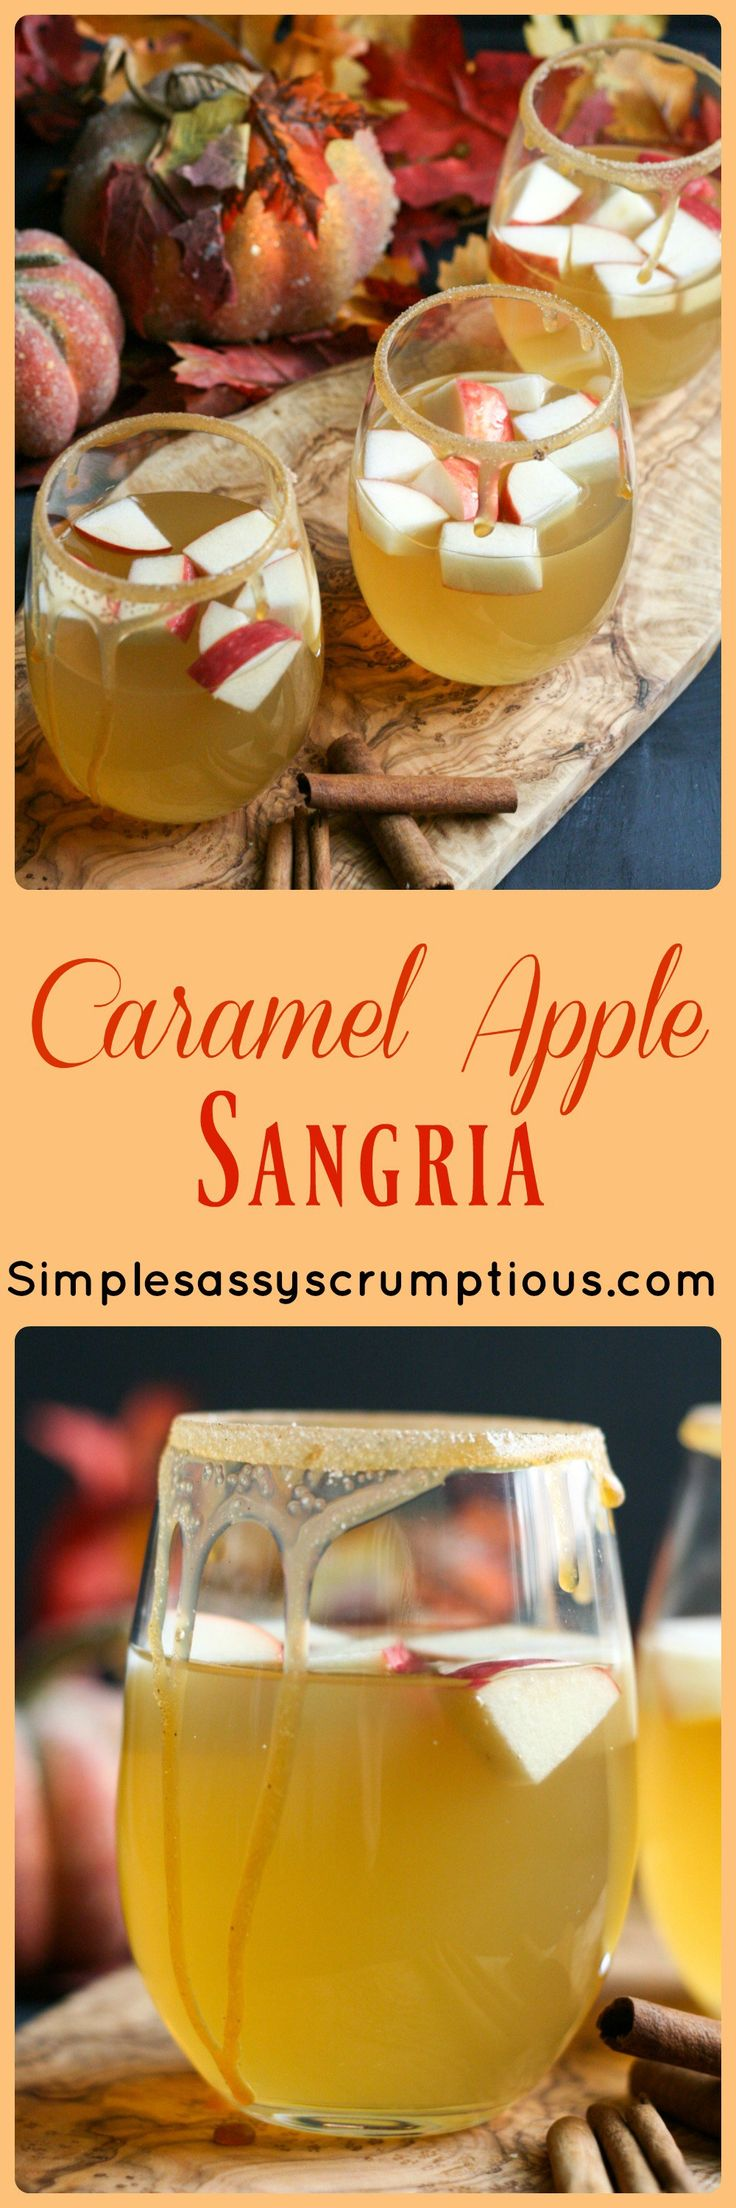 Rich and buttery caramel add a warm and cozy flavor to this Caramel Apple Sangria. The perfect cocktail for fall entertaining.